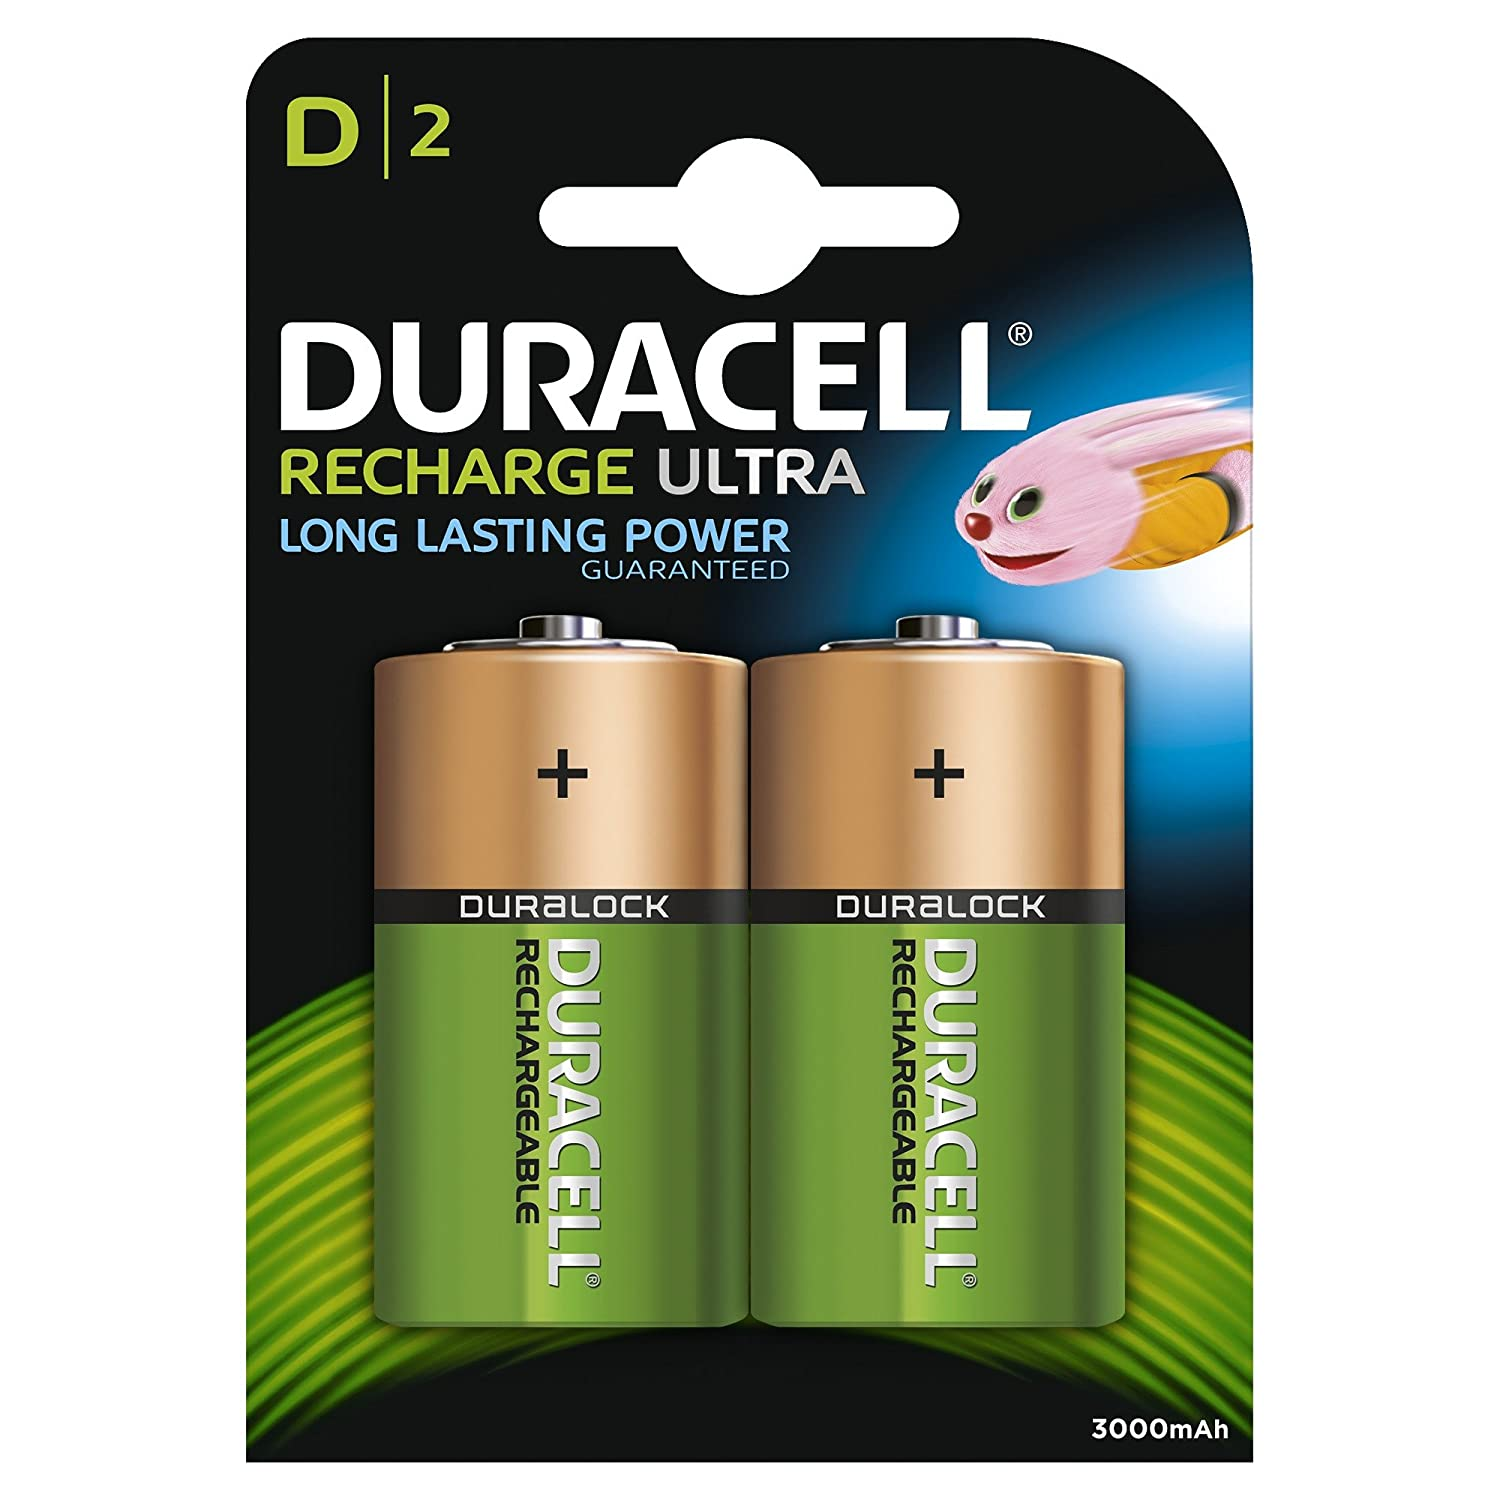 Twin Pack Duracell D 3000mAh Rechargeable Batteries HR20, LR20, MN1300, DC1300